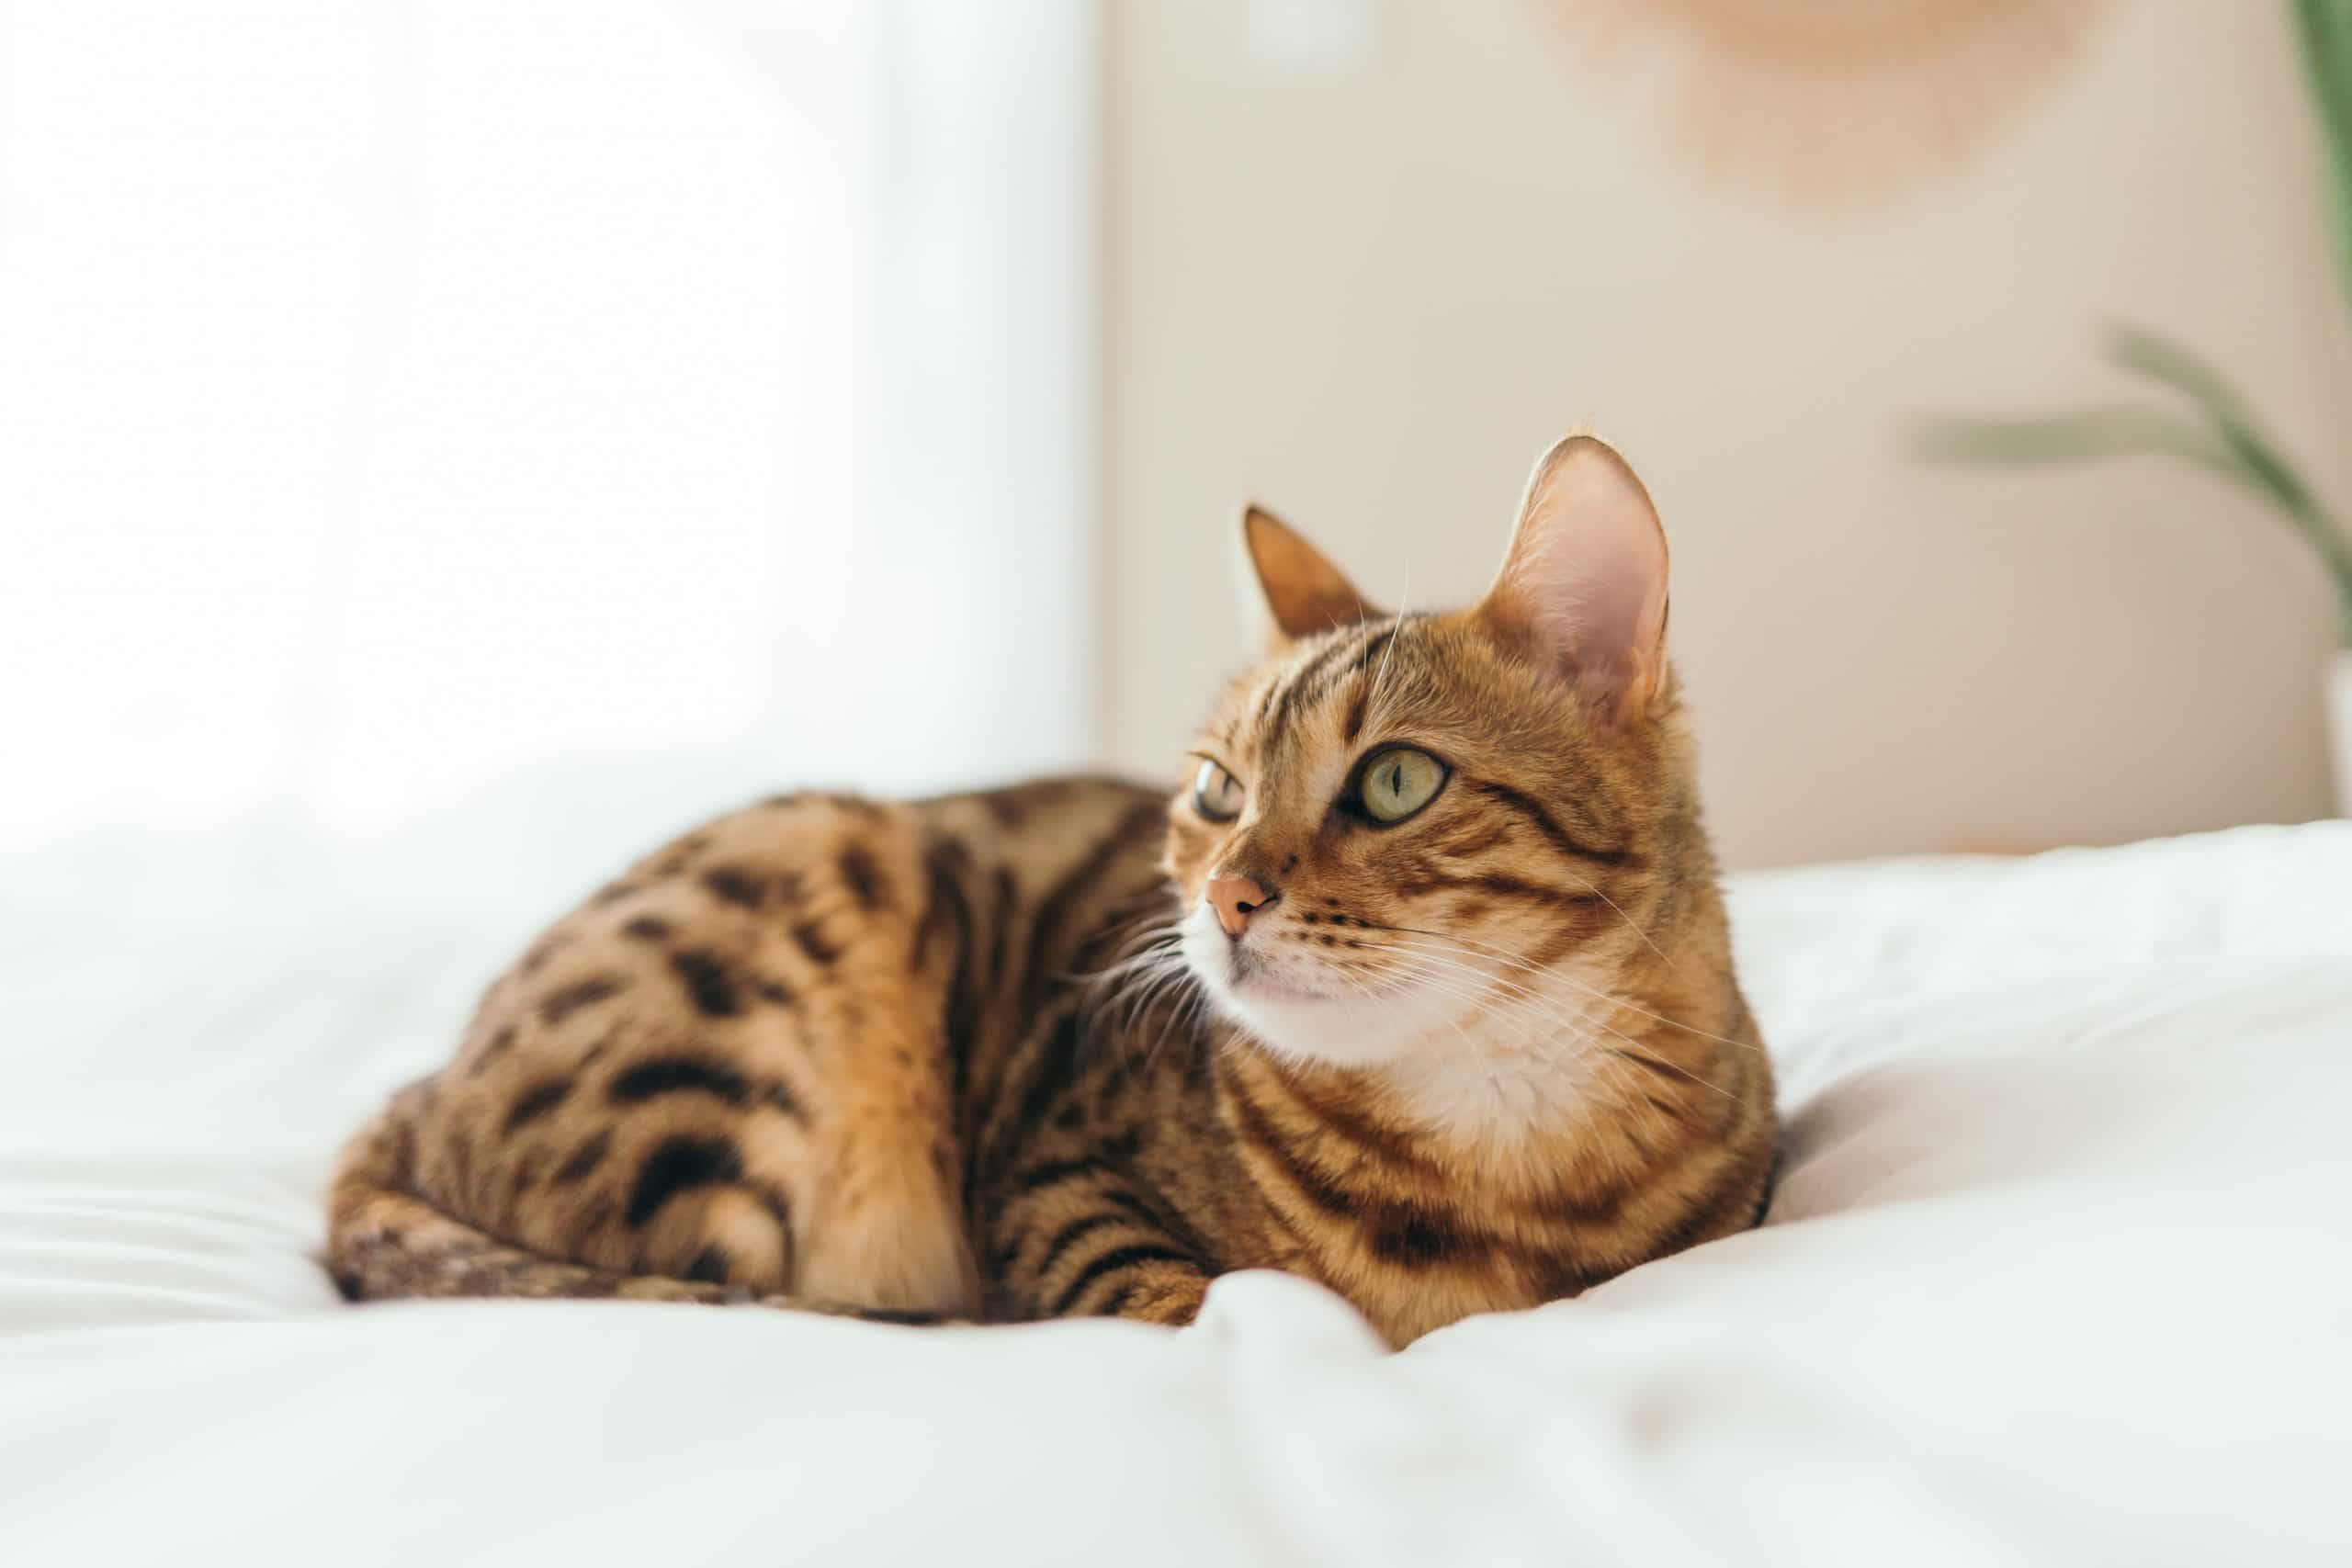 Chronic kidney disease can cause your cat to drink excessive amounts of water.